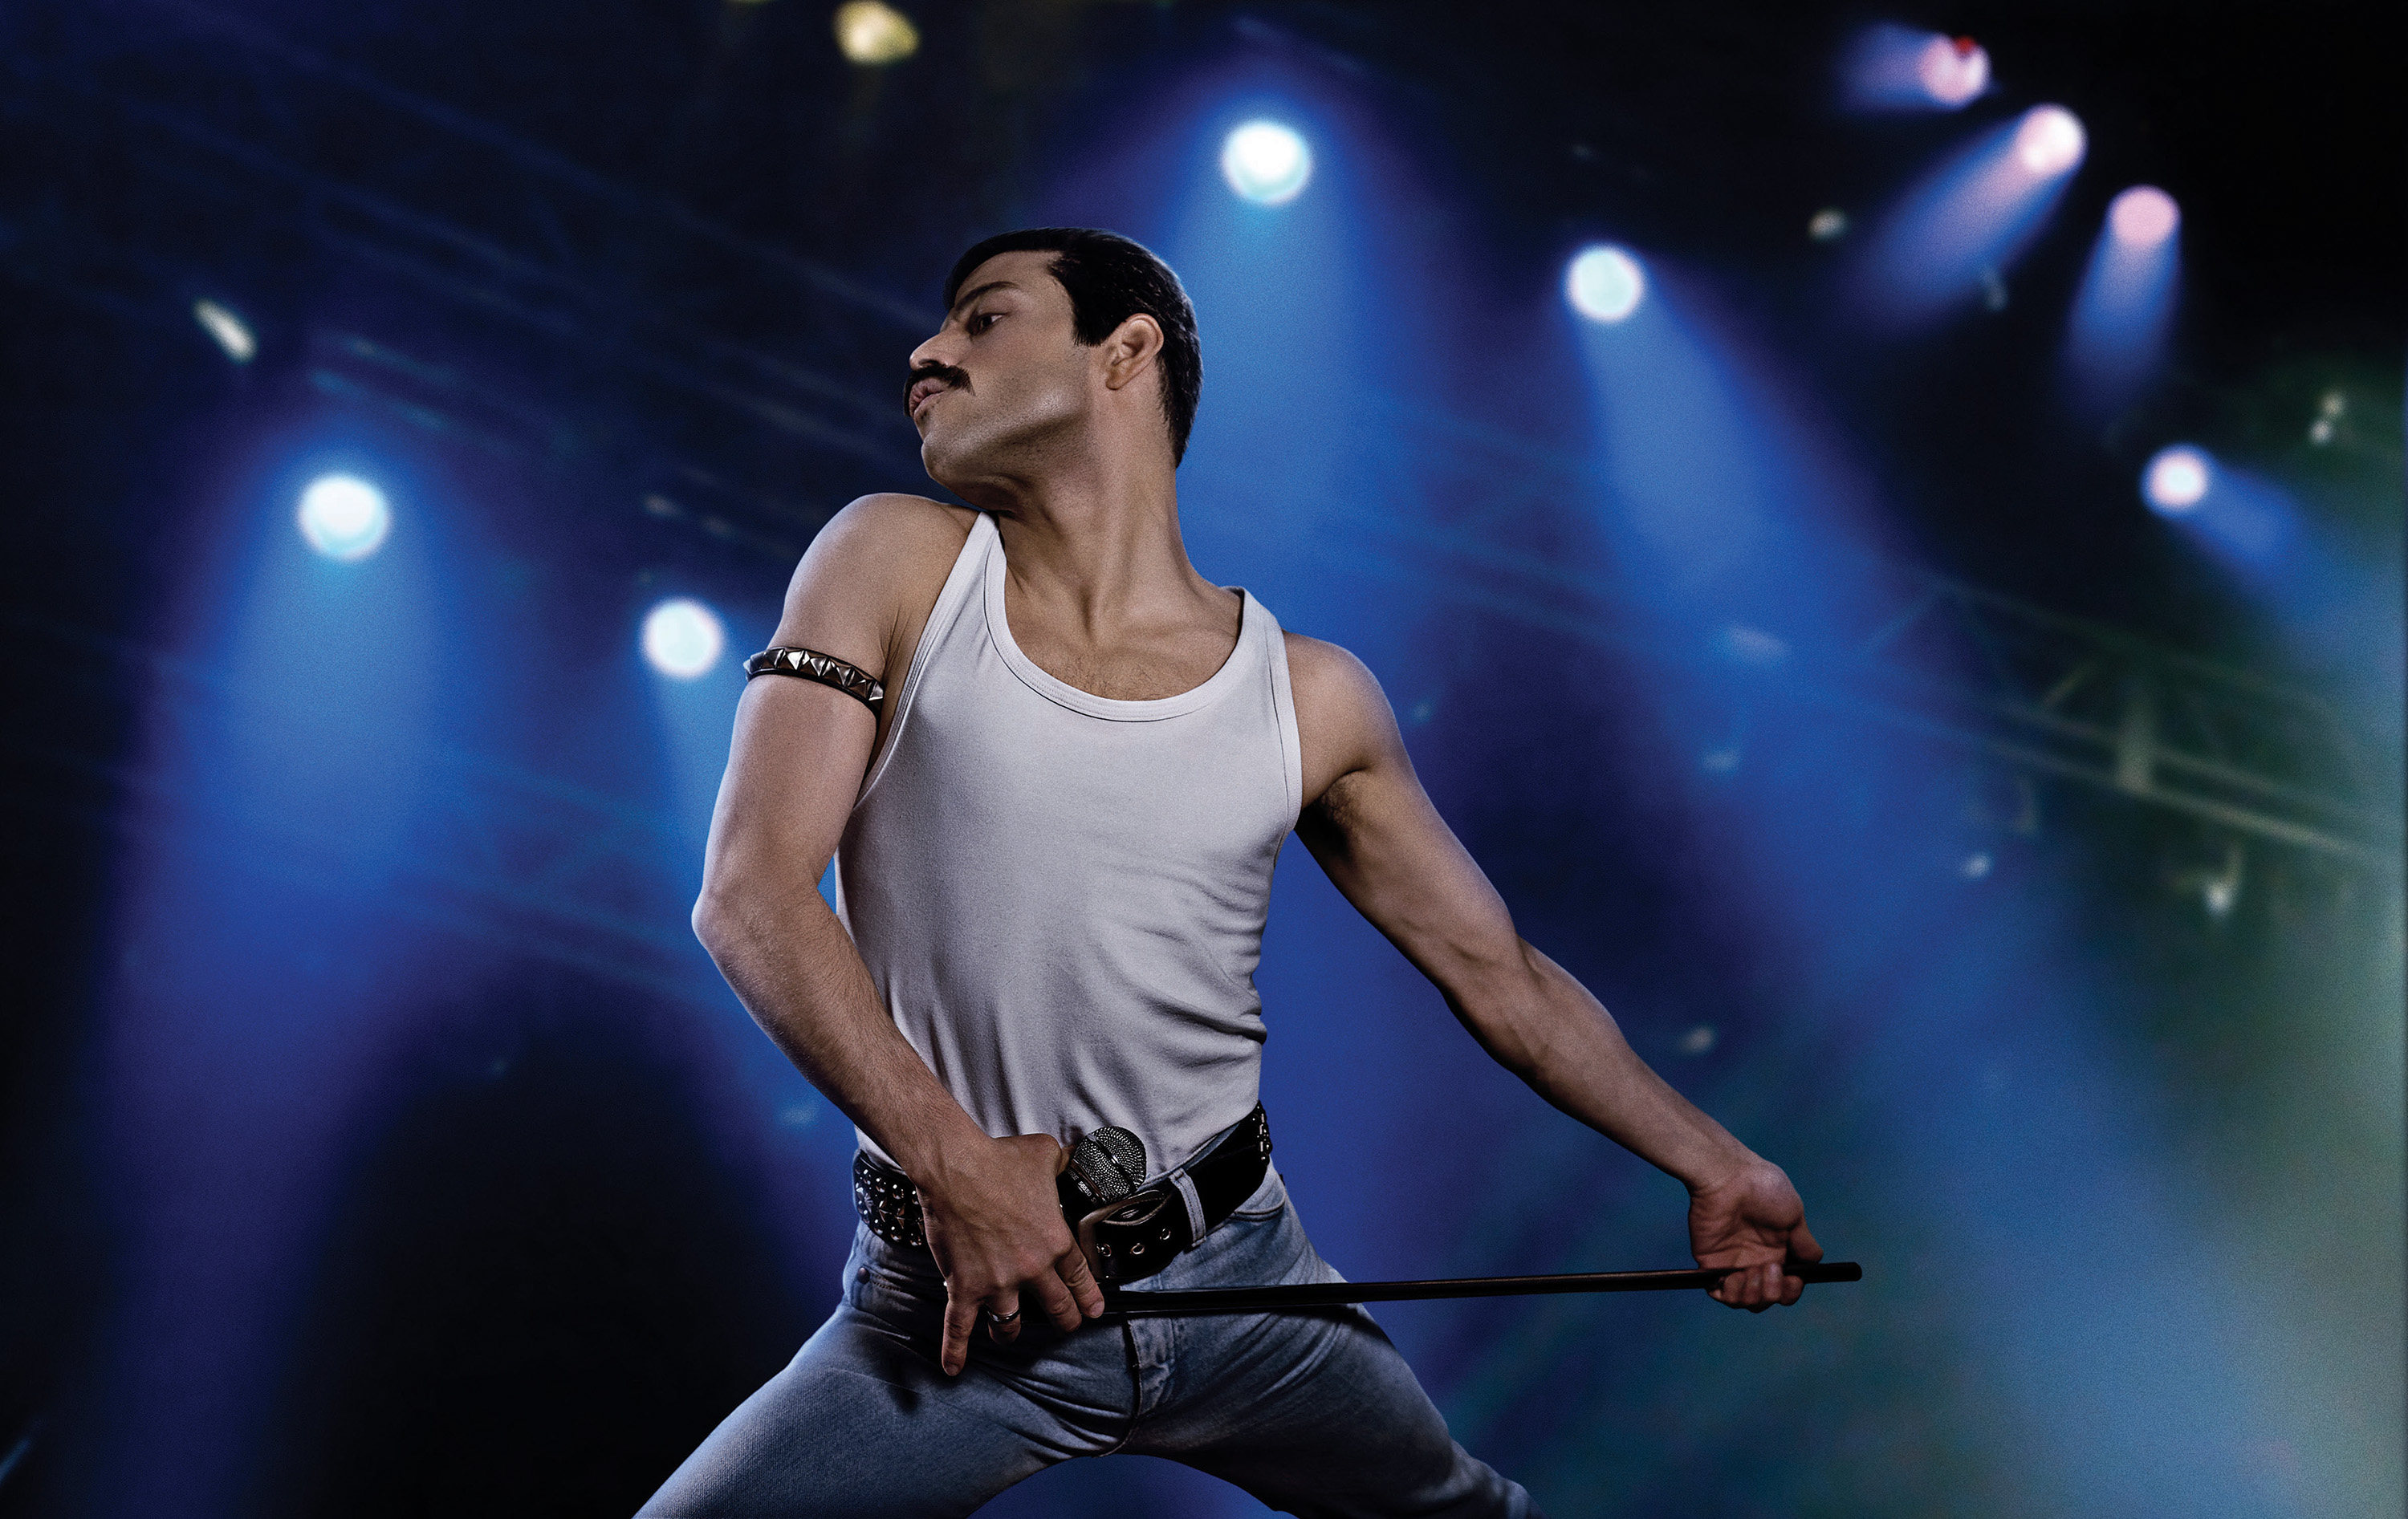 Bohemian Rhapsody: A film with controversial history and successful present